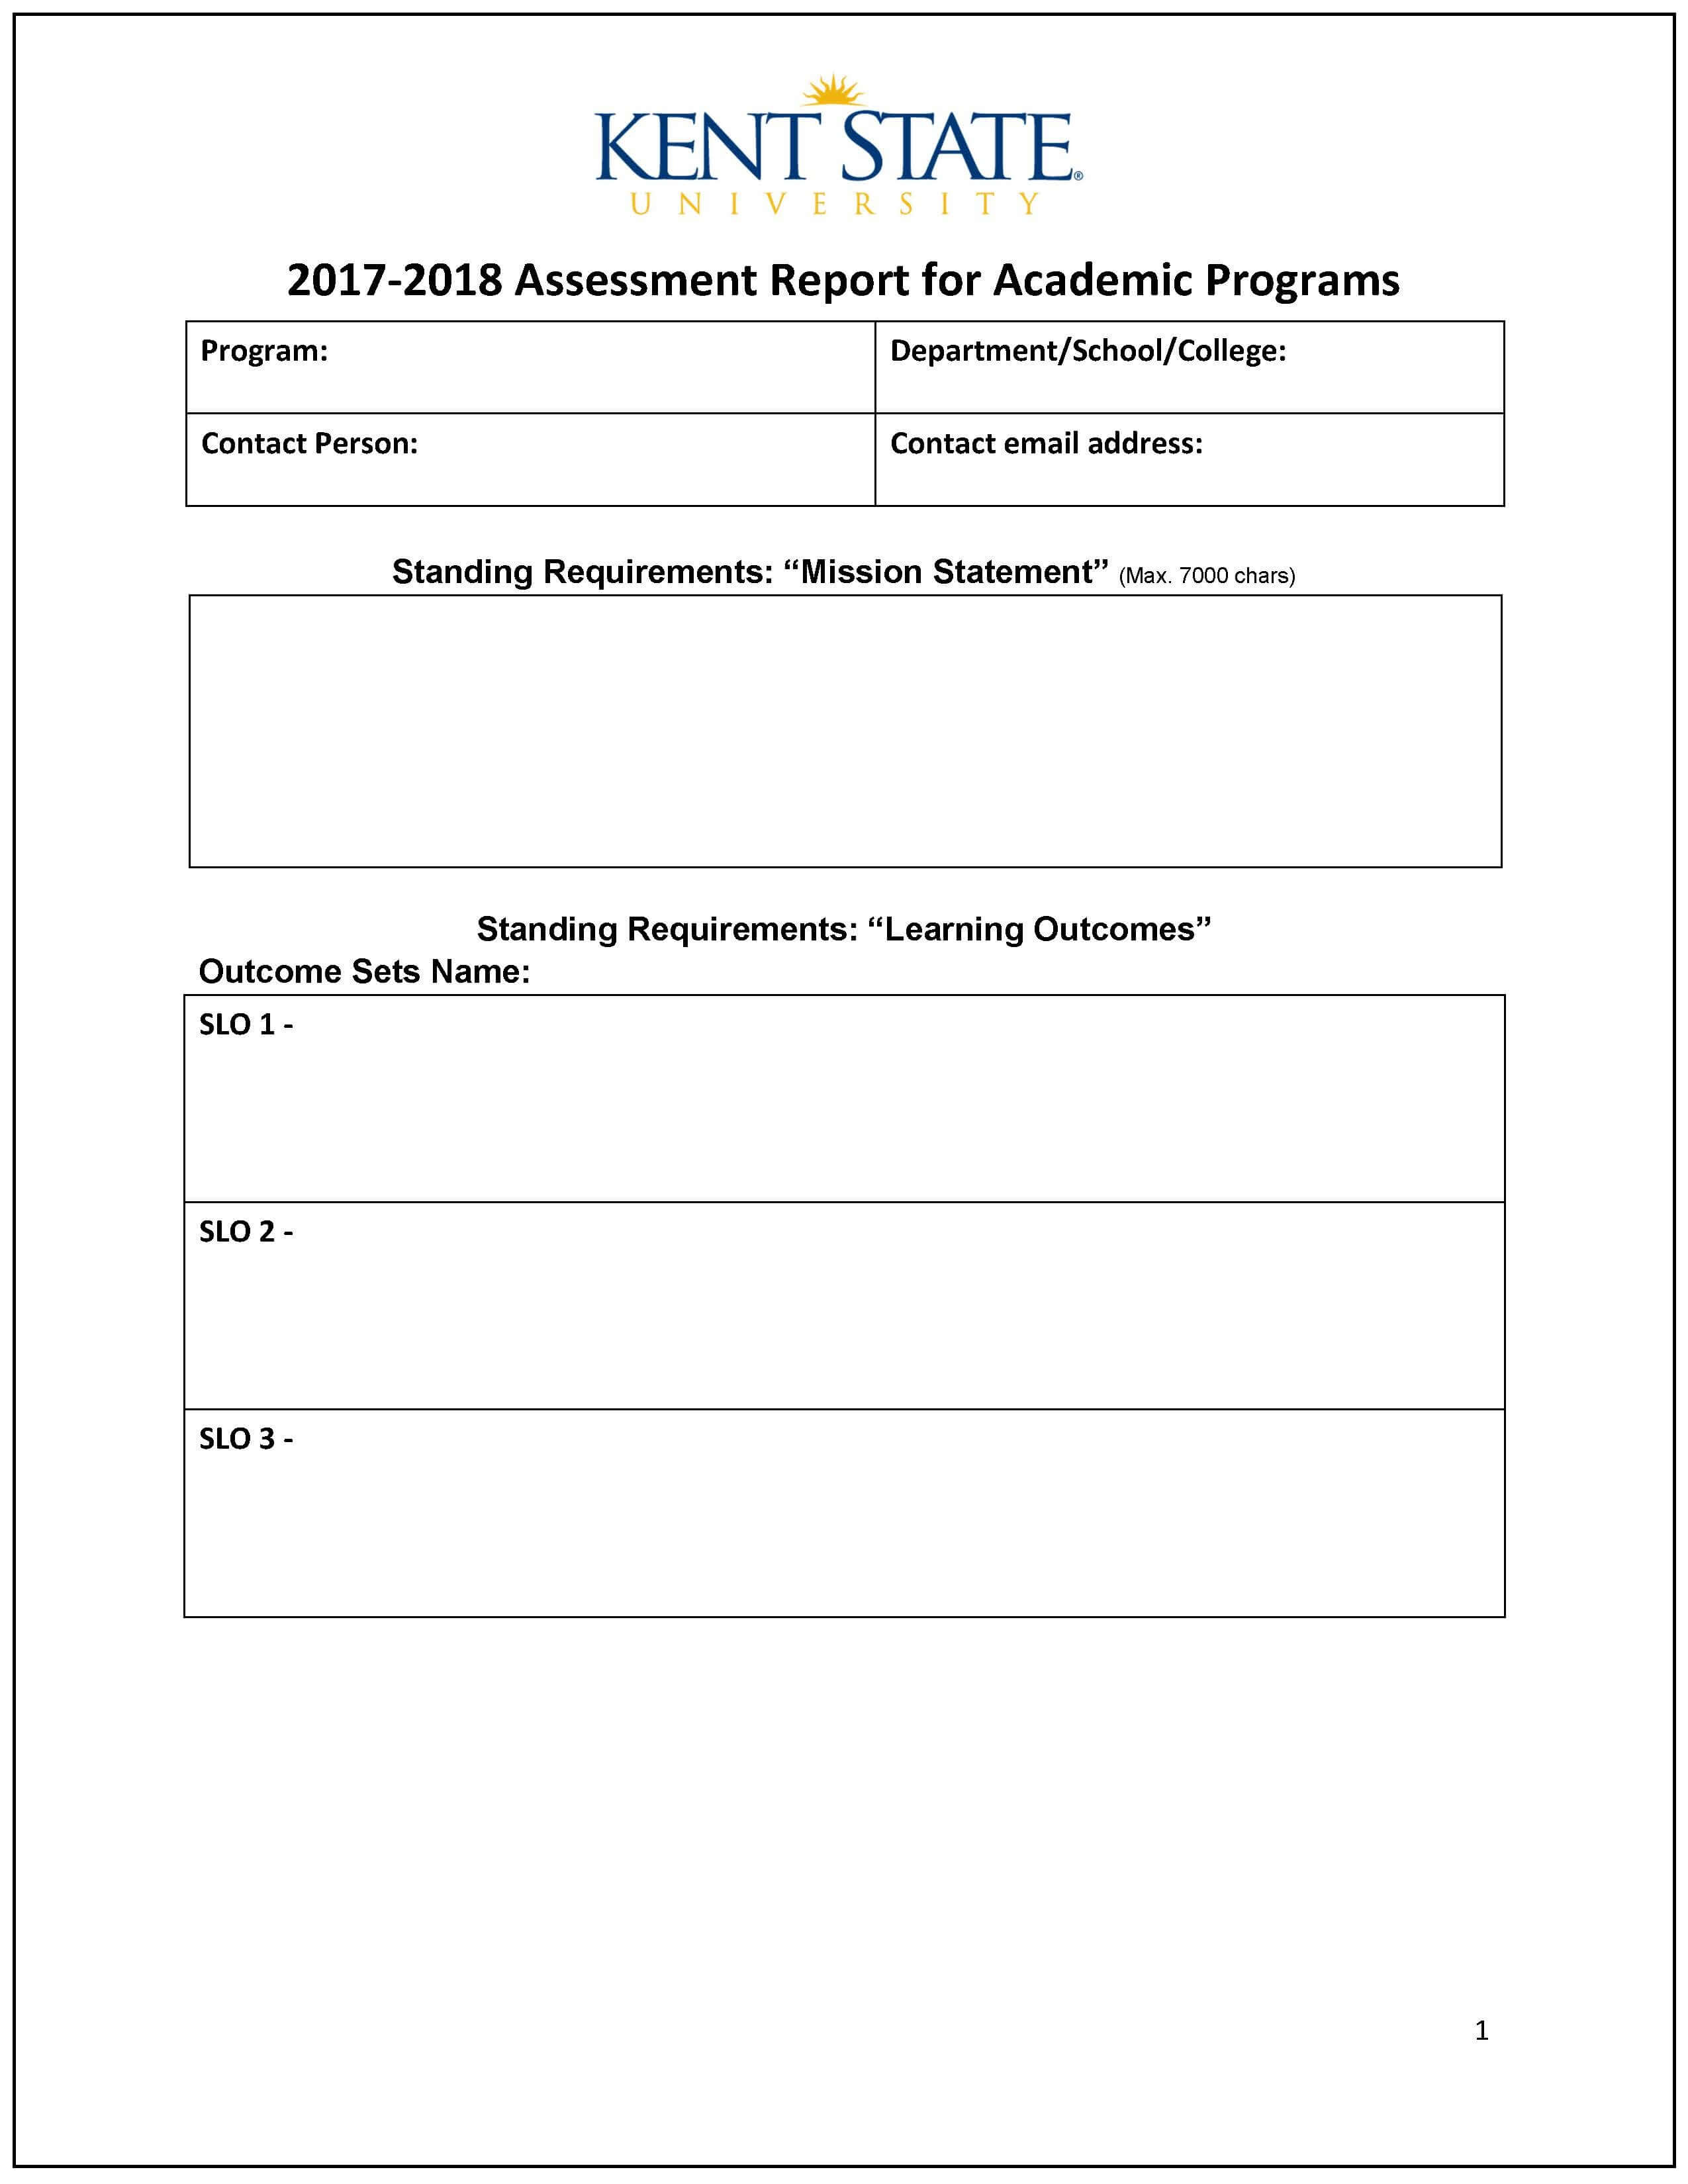 Assessment Report – Word Template | Accreditation Regarding It Report Template For Word